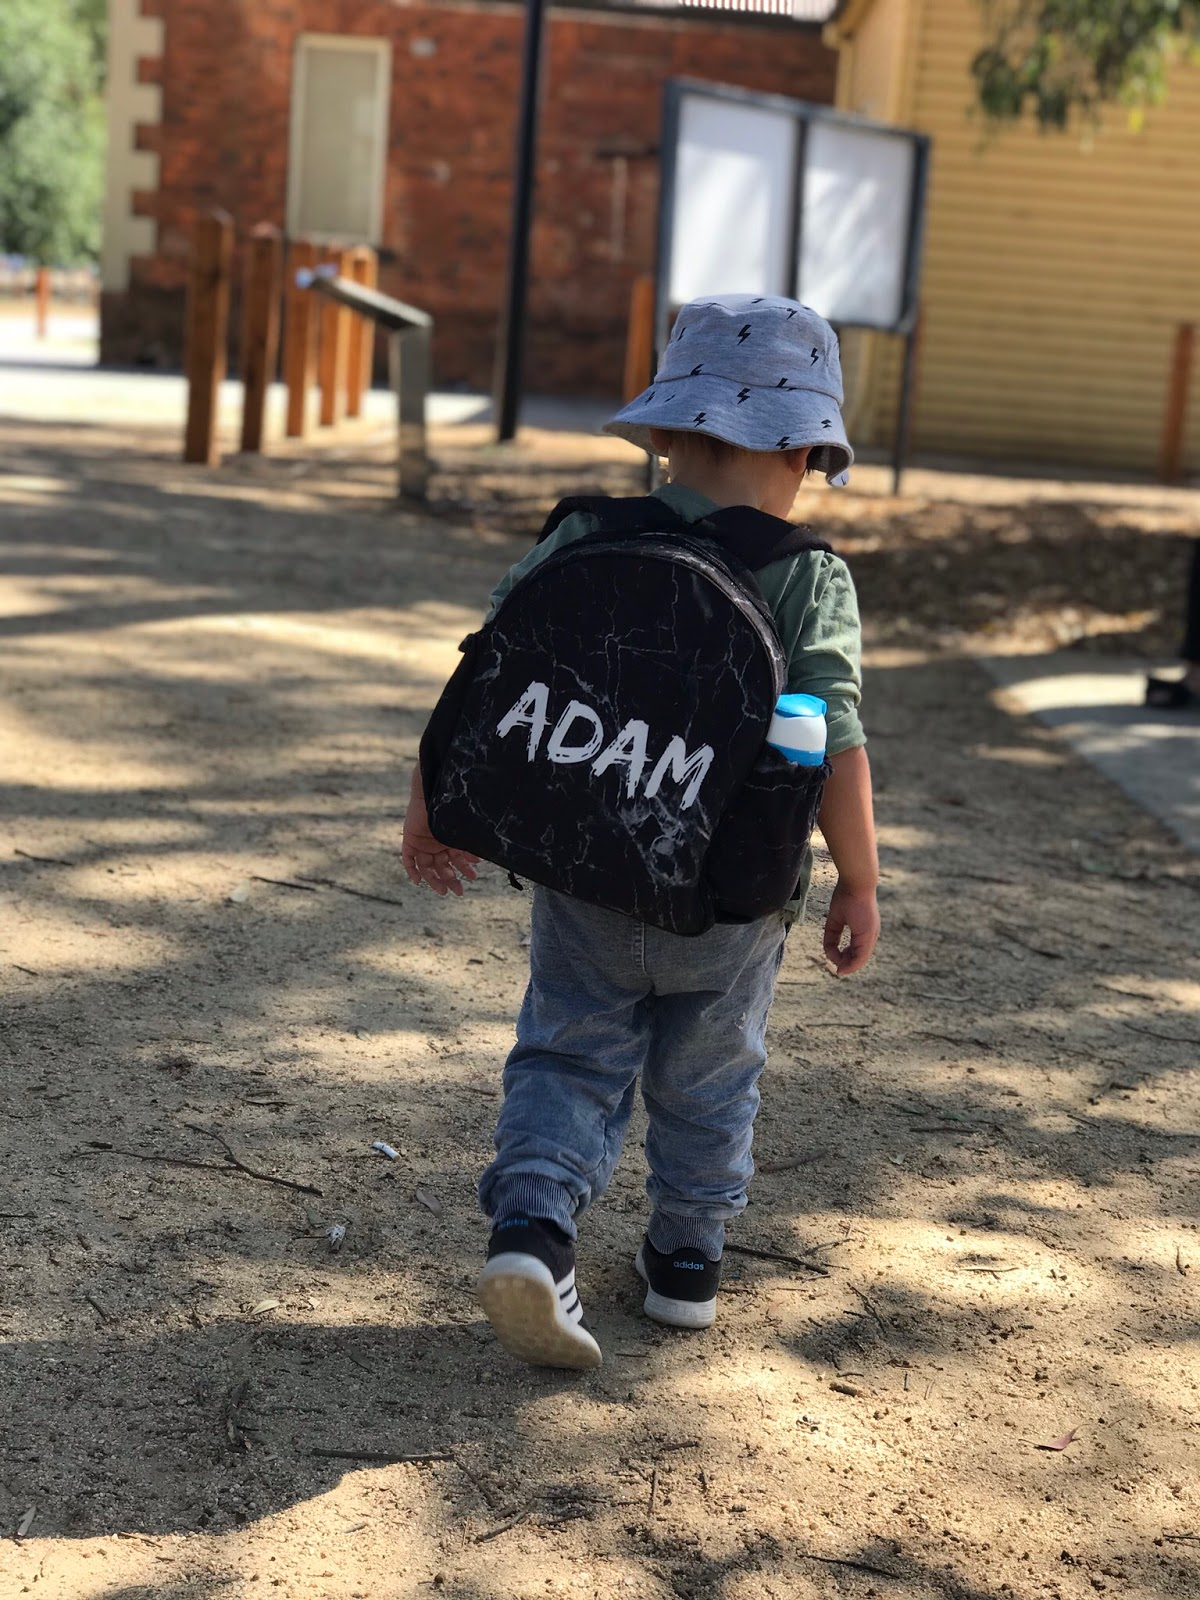 Image is a photo of a toddler walking away from the camera outdoors. He is wearing a backpack with black marble print and white text spelling ADAM. He is also wearing a grey wide brim hat and a long sleeve green top, with blue jeans and black sneakers. In the background, a building with red brick is visible.